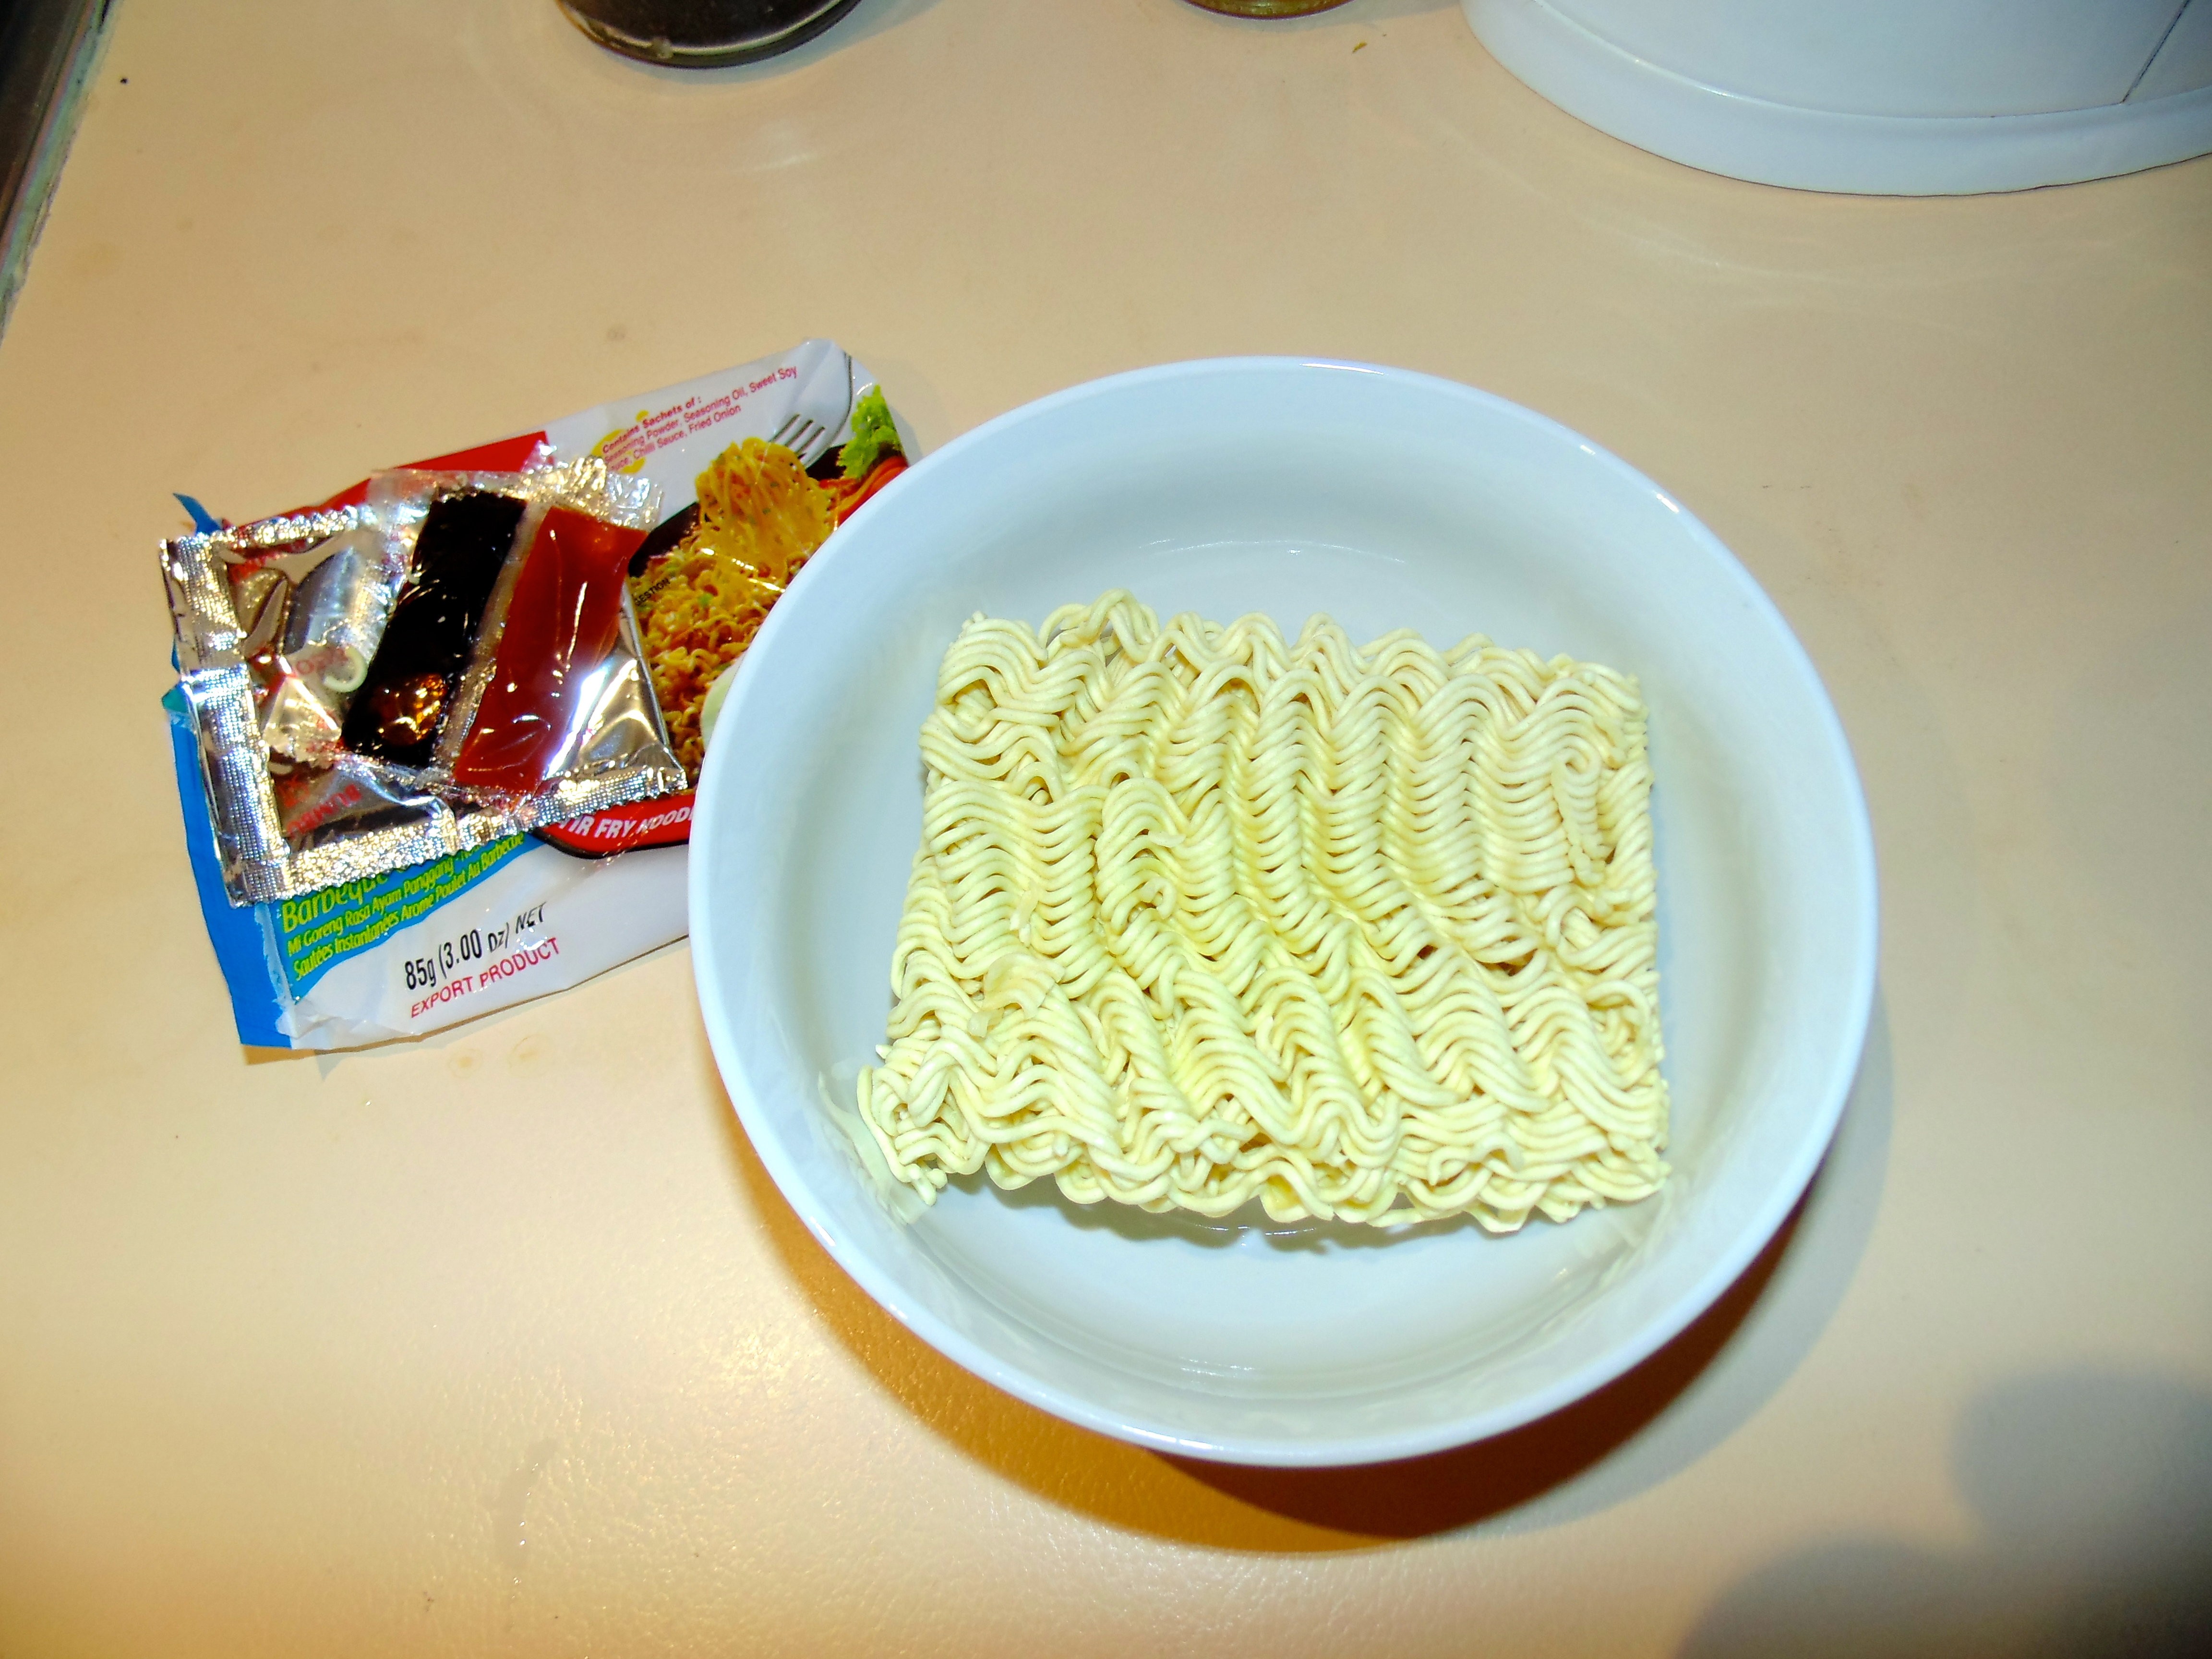 How Long Does It Take To Cook Ramen